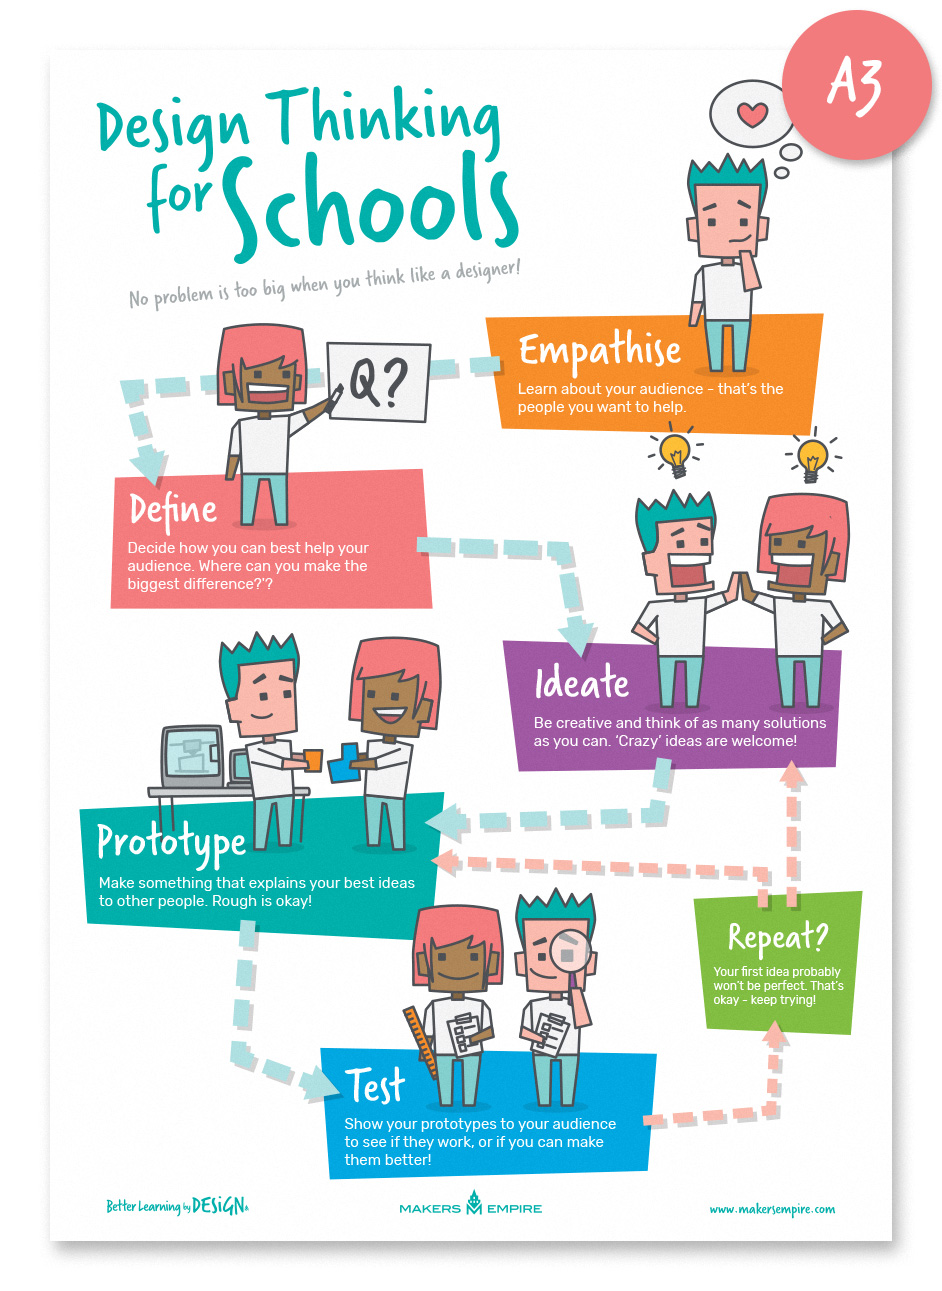 School Project Poster Design Ideas Design Thinking For Schools Poster Makers Empire Design